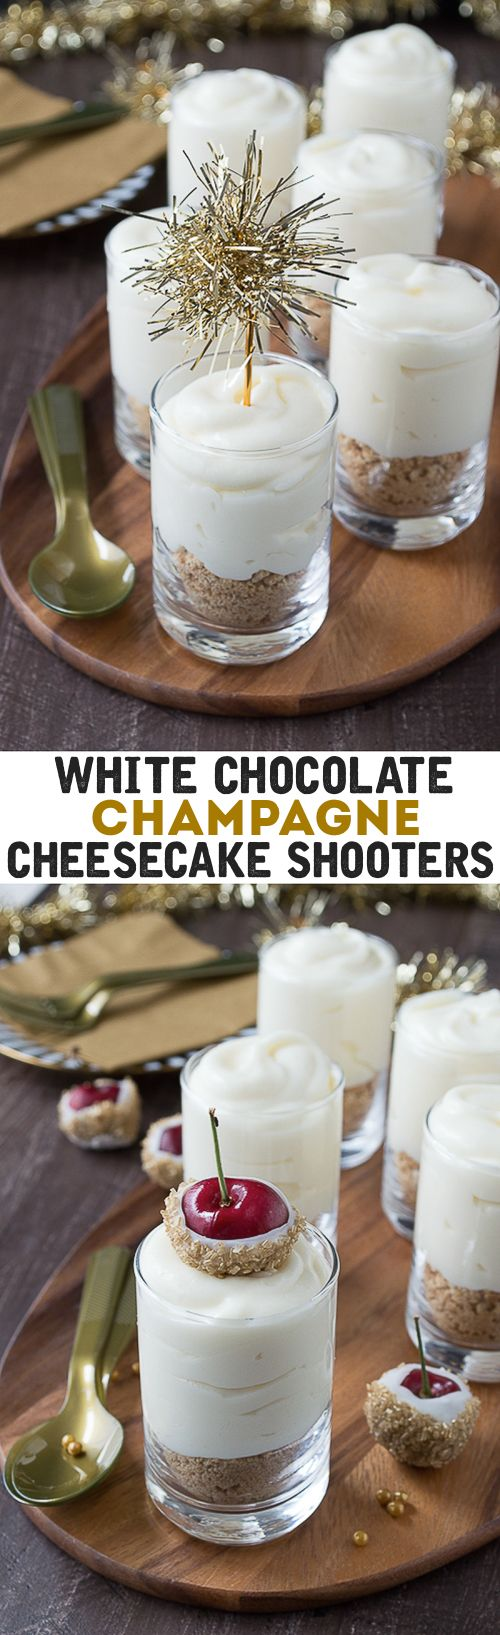 White Chocolate Champagne Cheesecake Shooters | The First Year